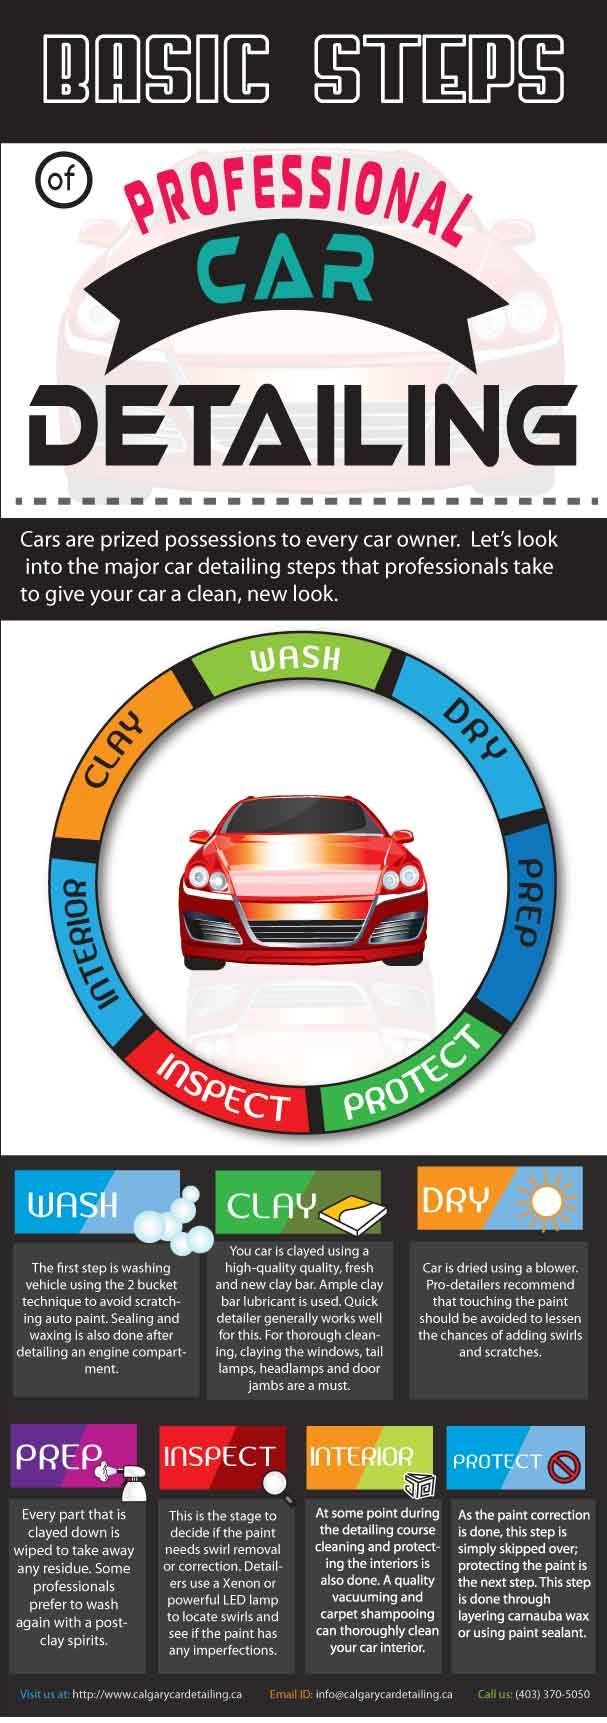 View this infographic to know about the major steps of professional car detailing that gives your